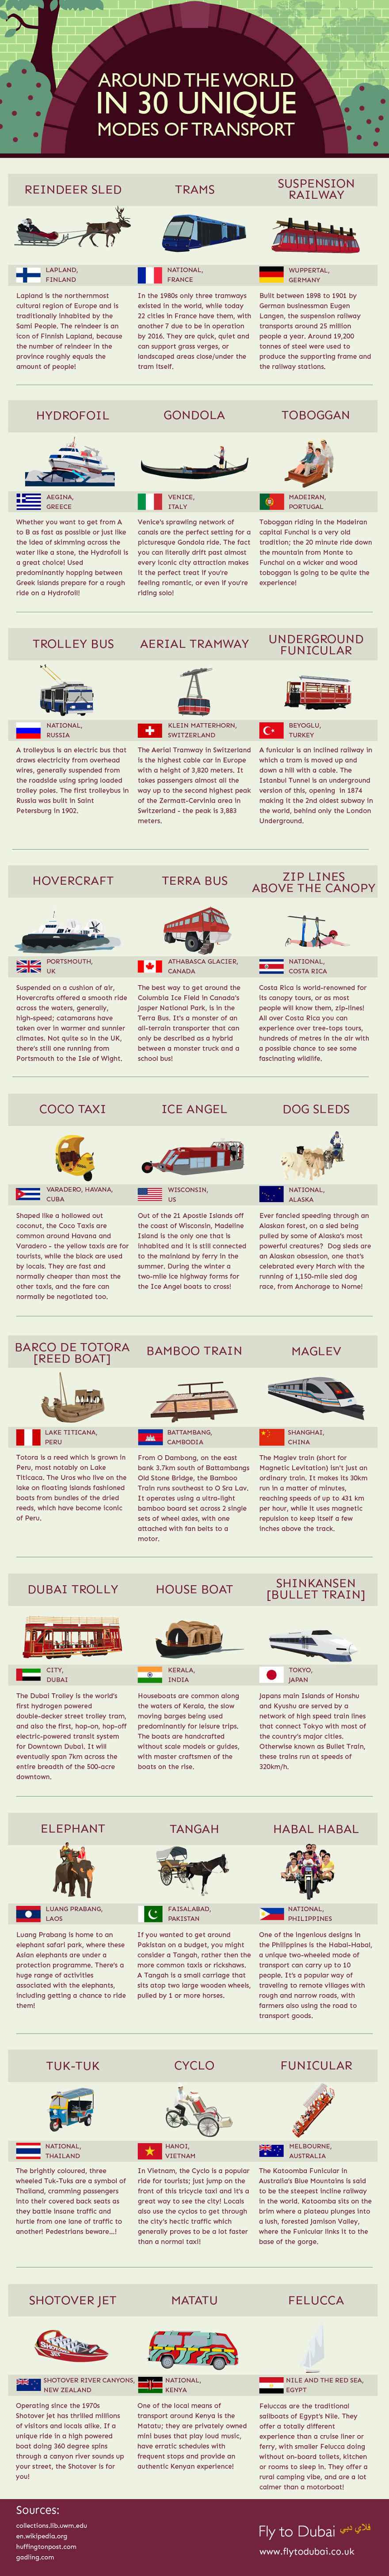 transport-infographic__880